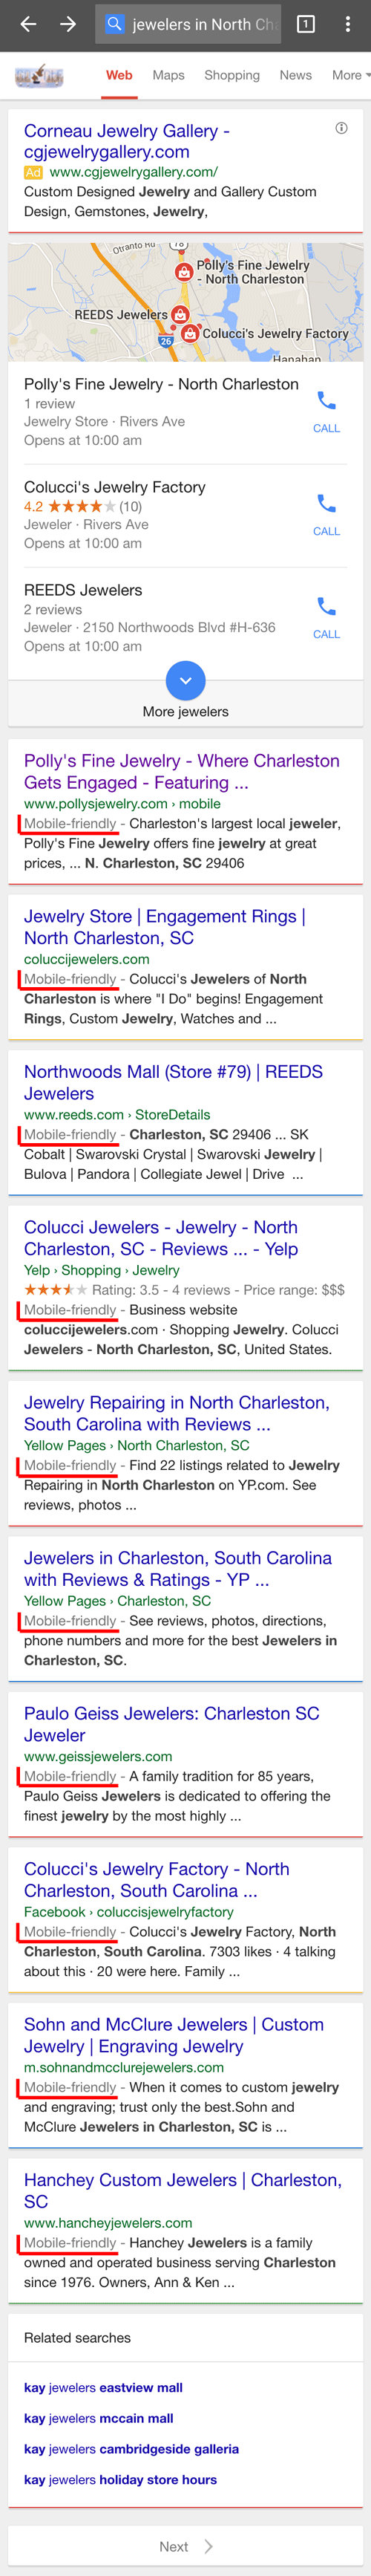 Pollys Fine Jewelry Website Review 1280-SERP-53